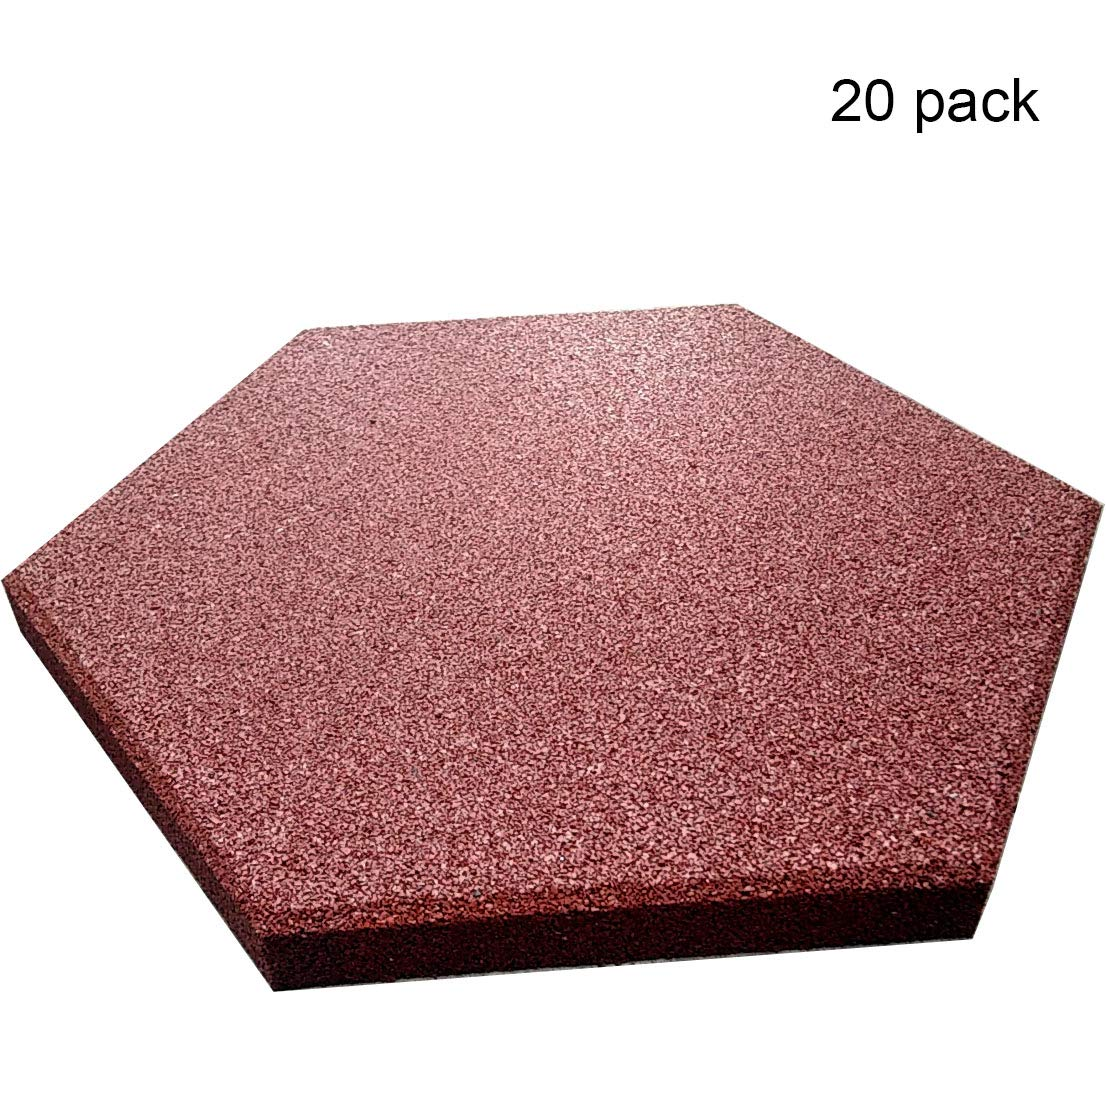 Revtime Hexagon Rubber Pavers 10 1 2 3 4 Pack Of 20 Red Revtime